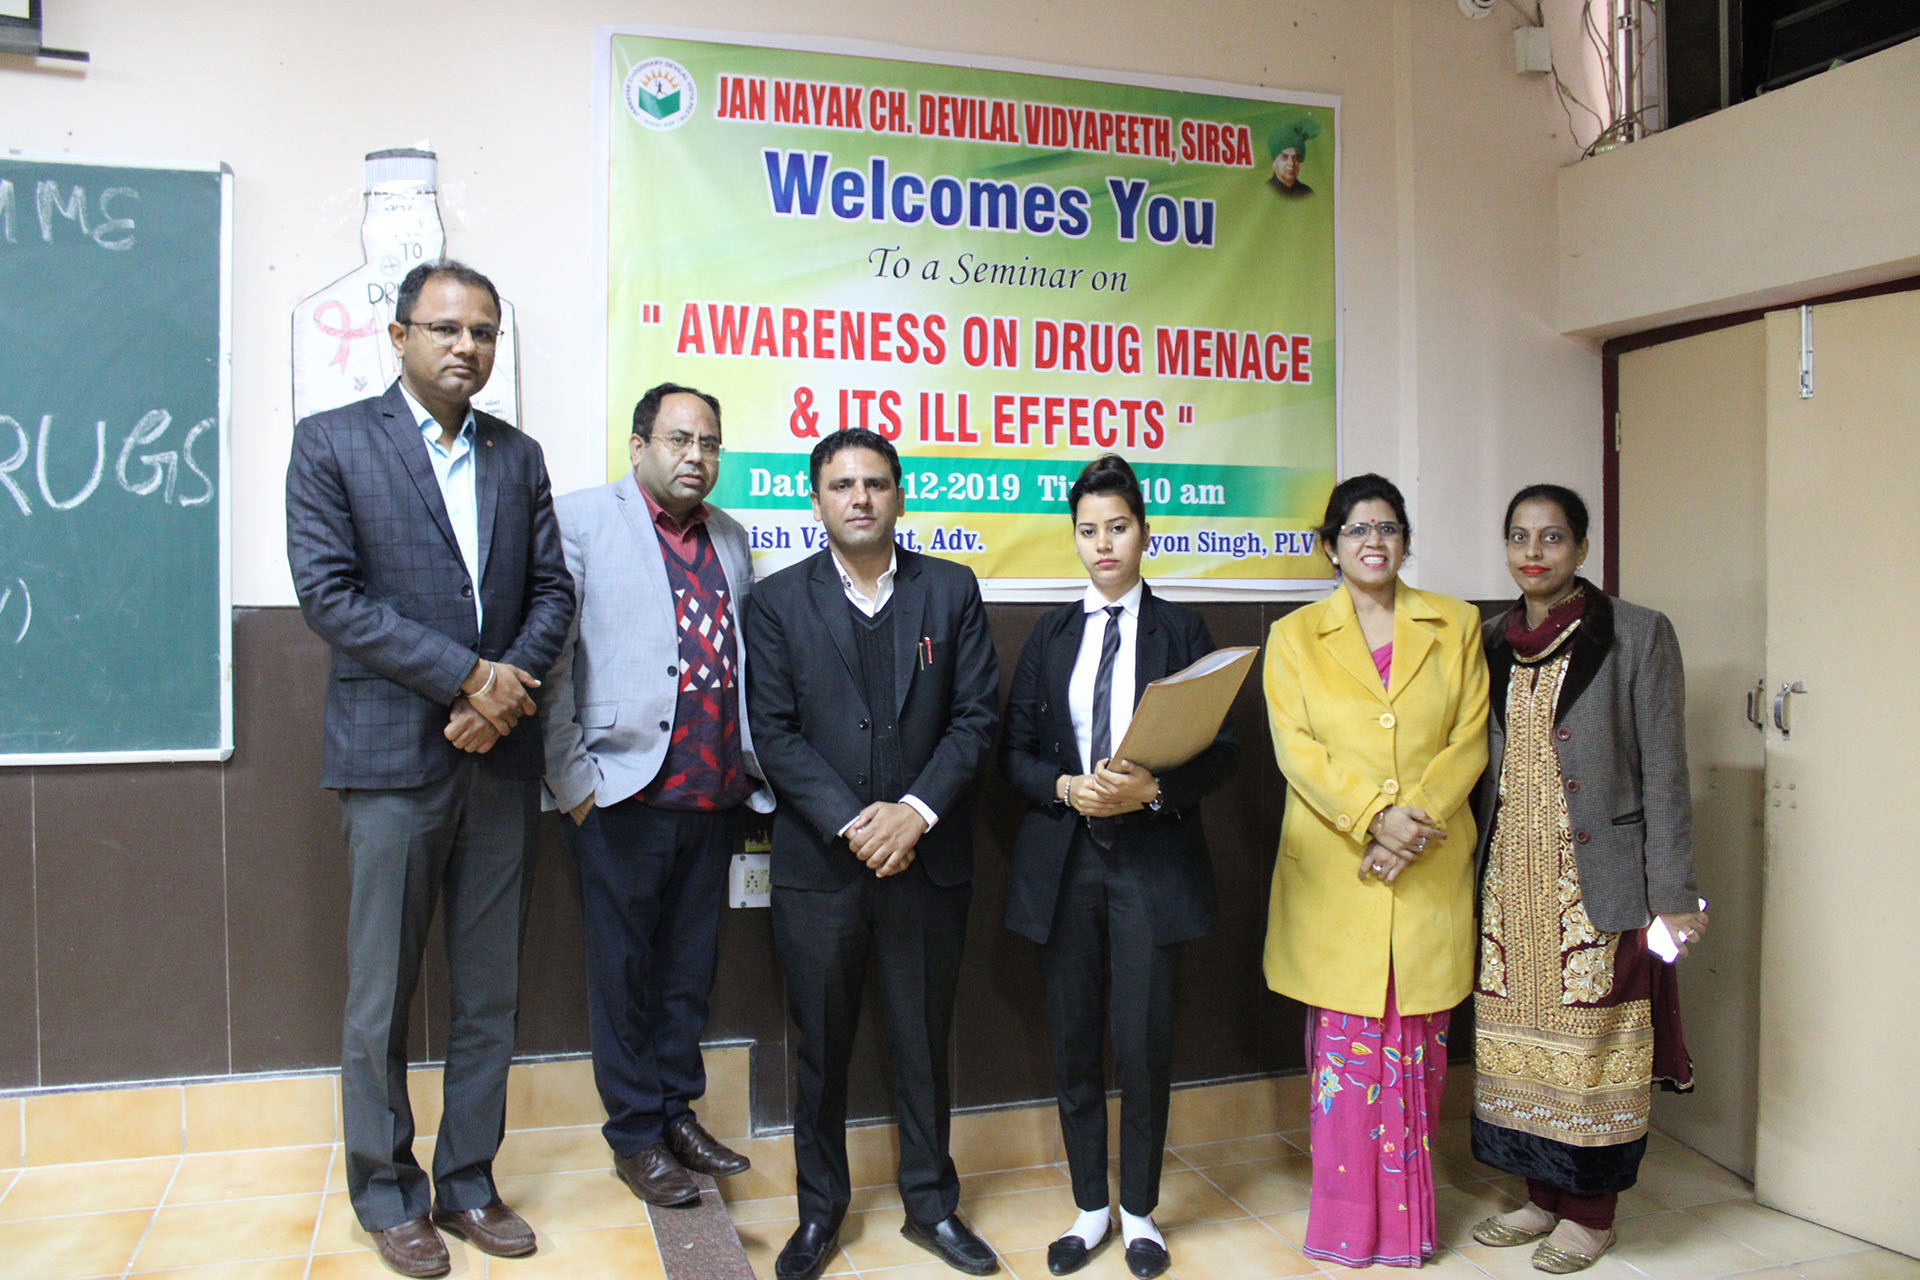 Lecture on Awareness on Drug Menace & its ill Effects